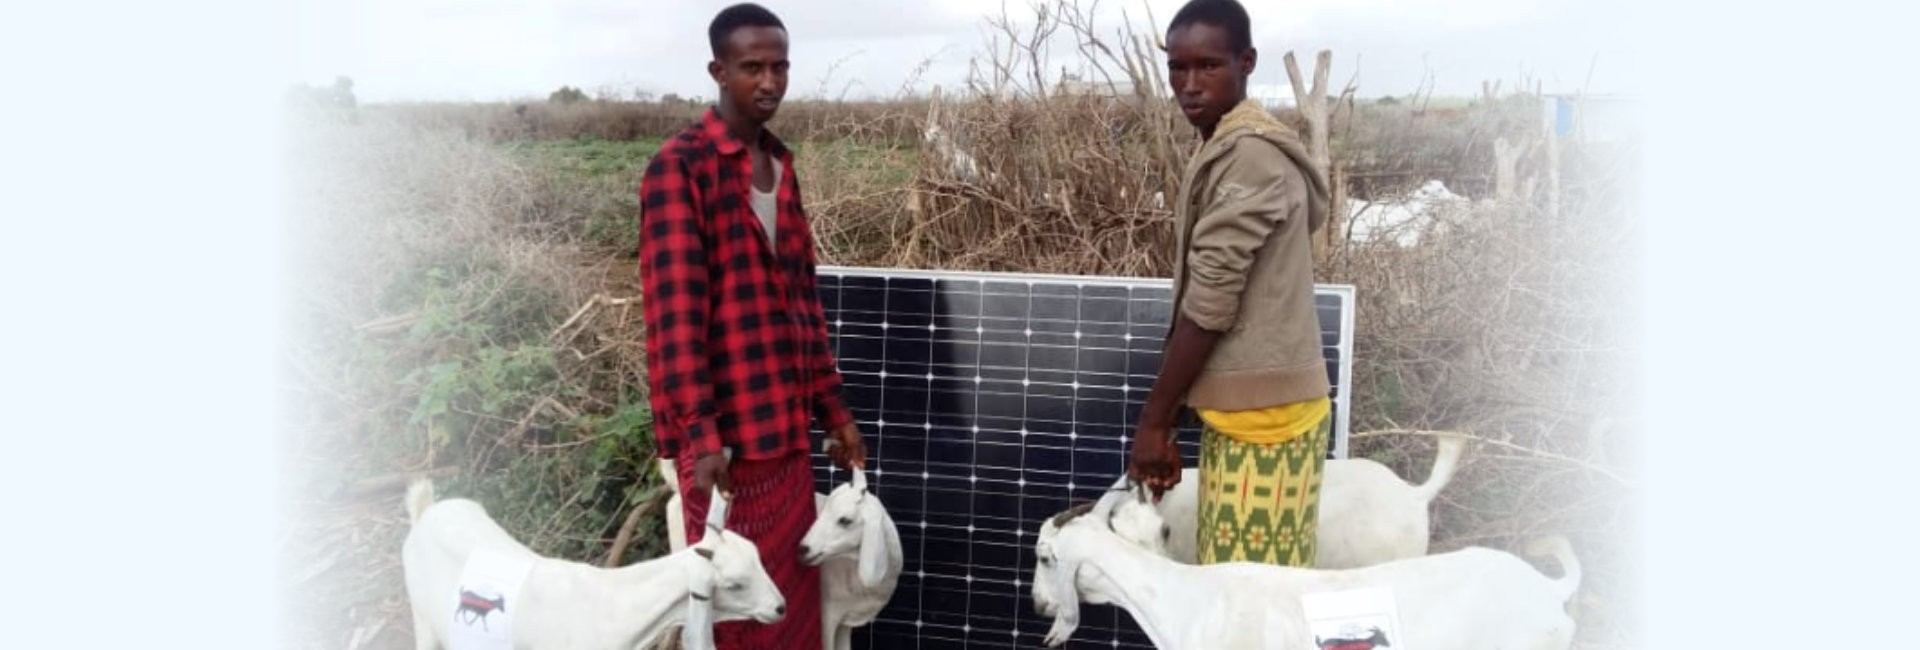 two man and solar panel